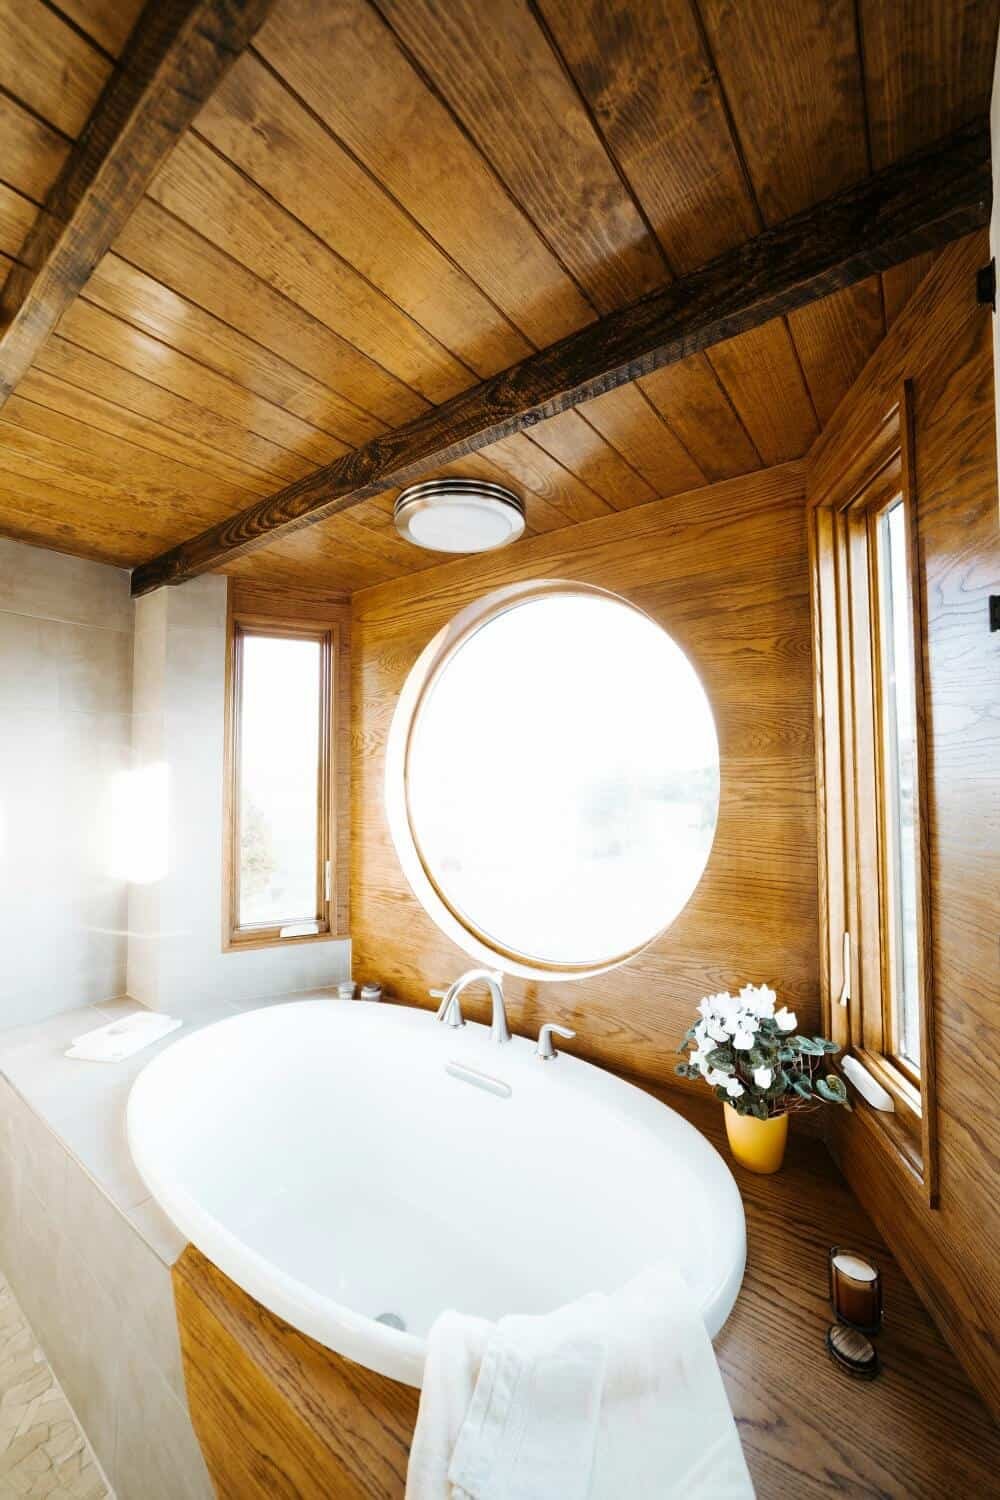 Bathroom area of the Monacle Tiny Home by Wind River